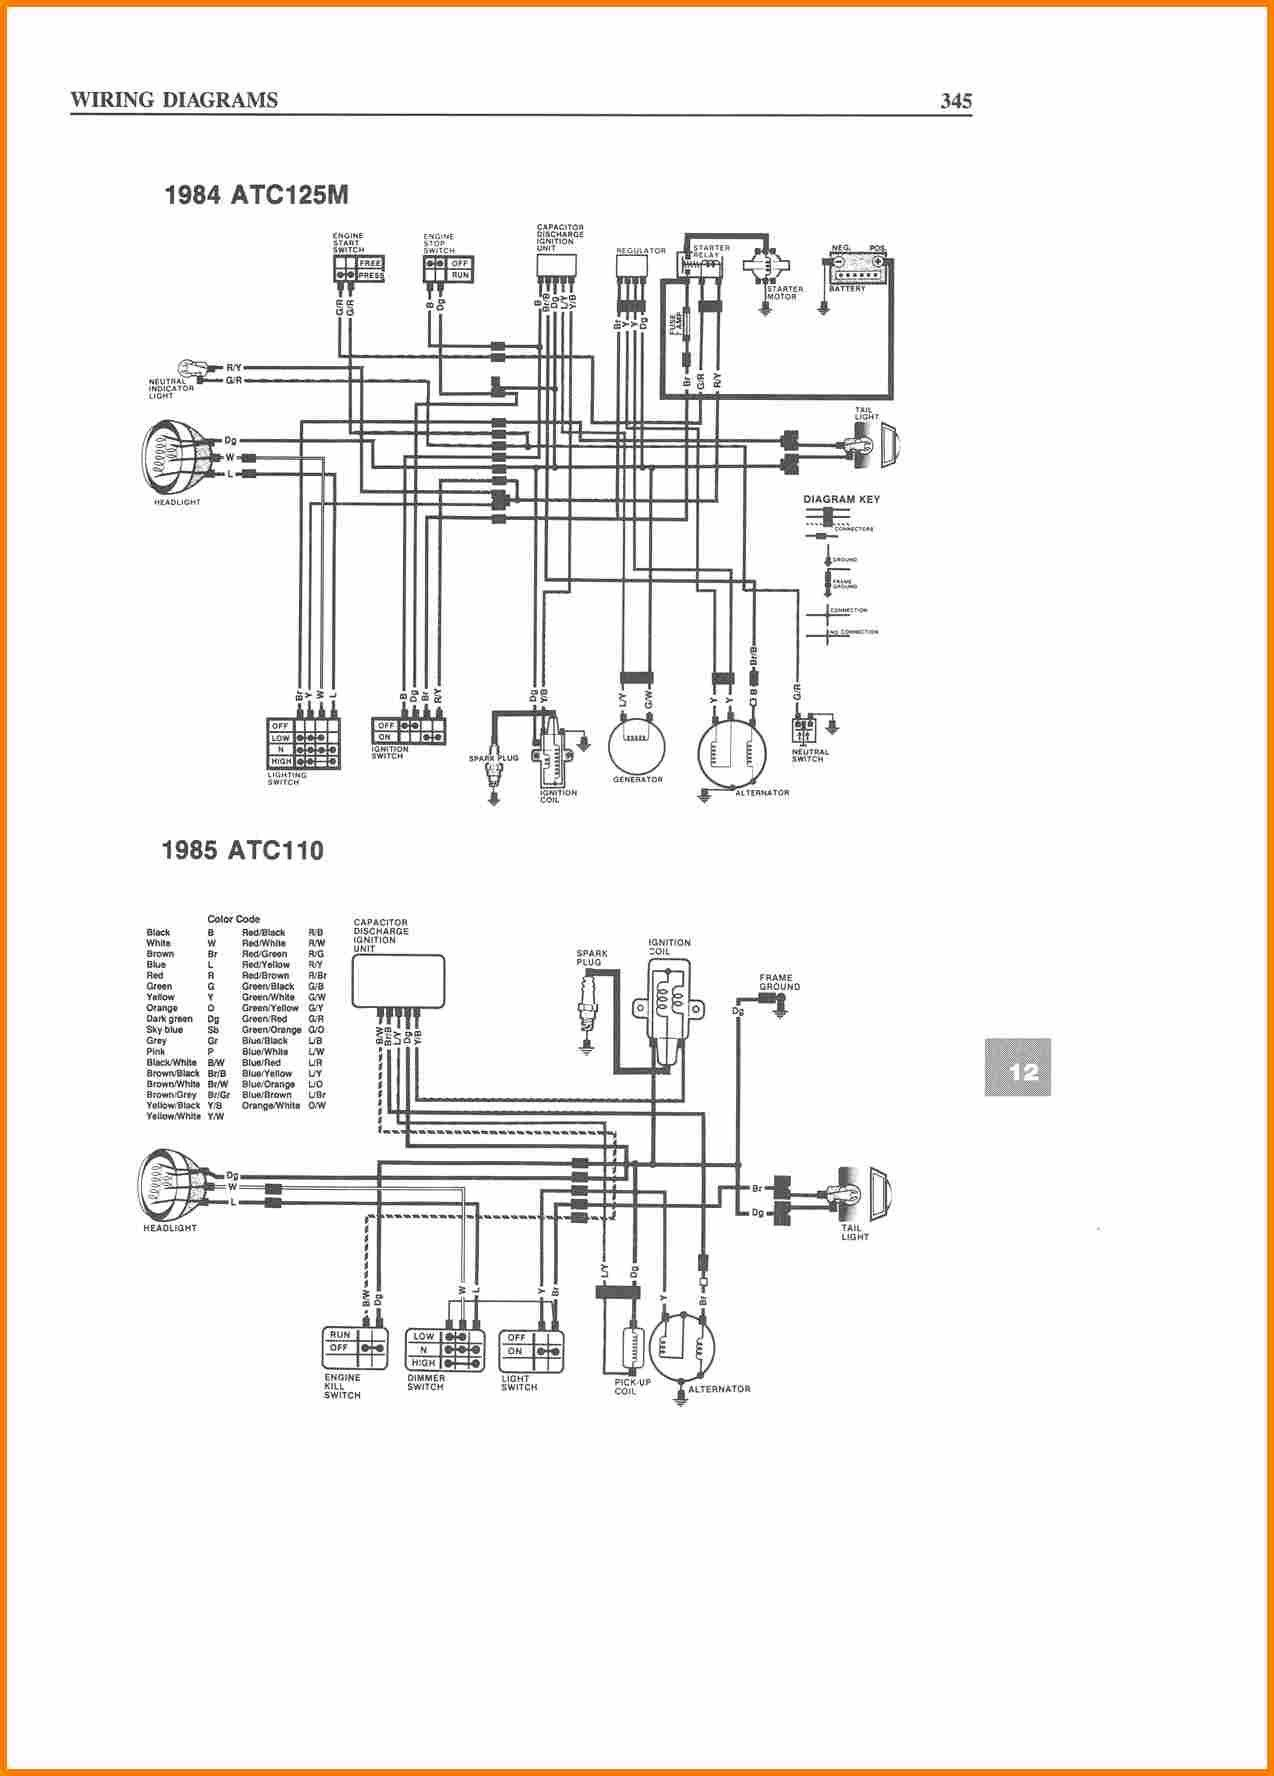 taotao 50cc scooter wiring diagram beautiful magnificent tao 125 new Tao Tao Scooter Wiring Diagram taotao 50cc scooter wiring diagram beautiful magnificent tao 125 new atv